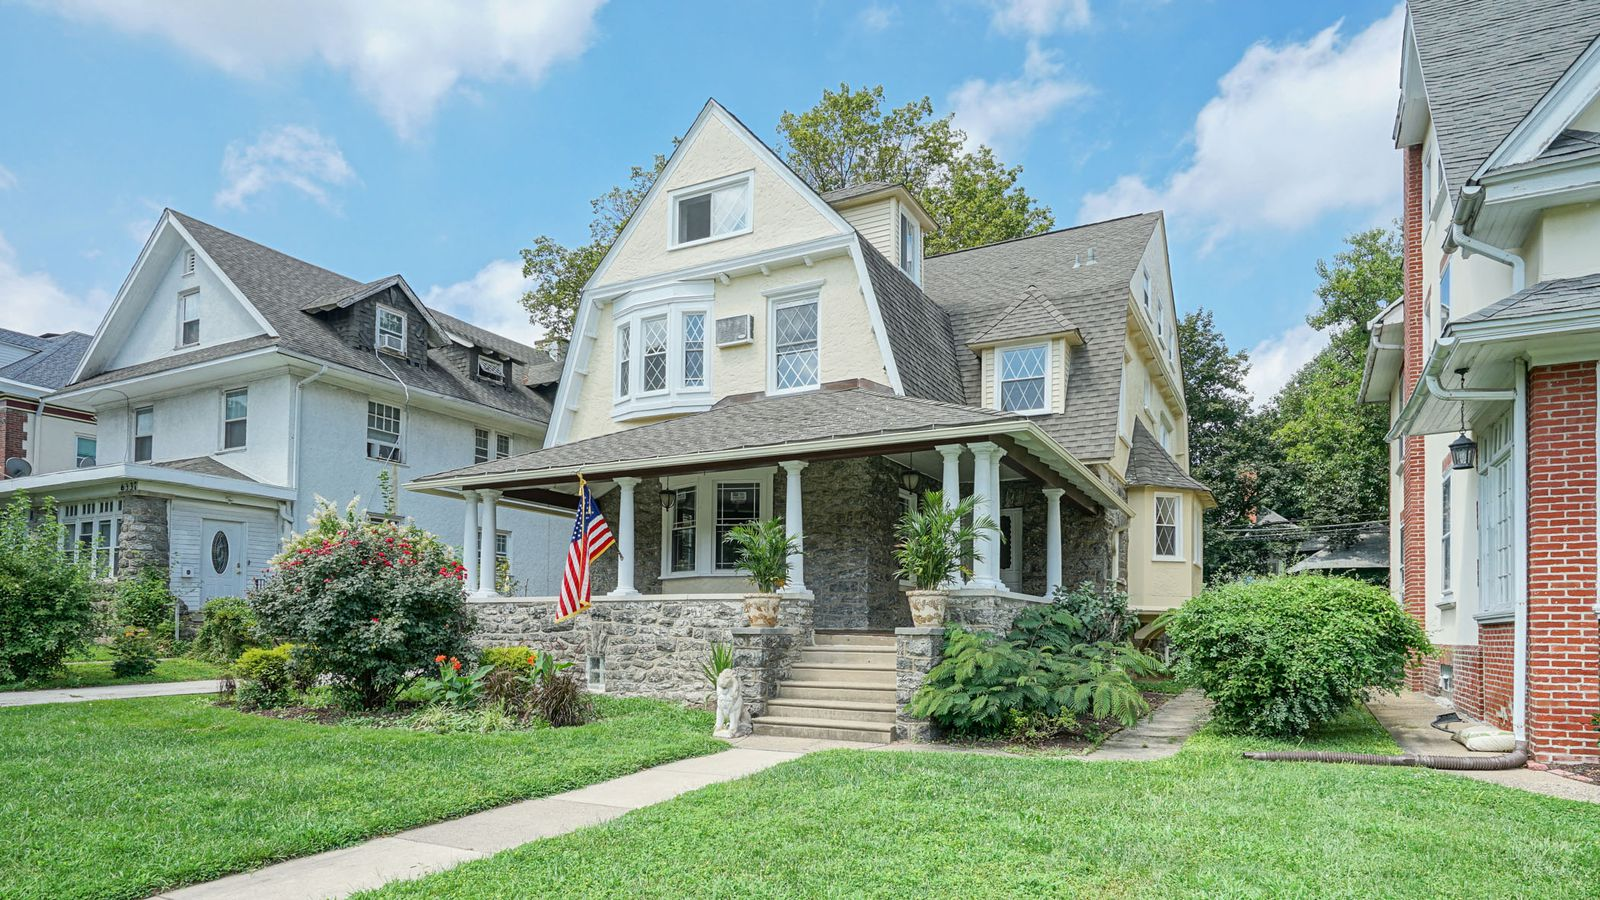 Handsome Overbrook Farms Home With Six Bedrooms Asks 459k